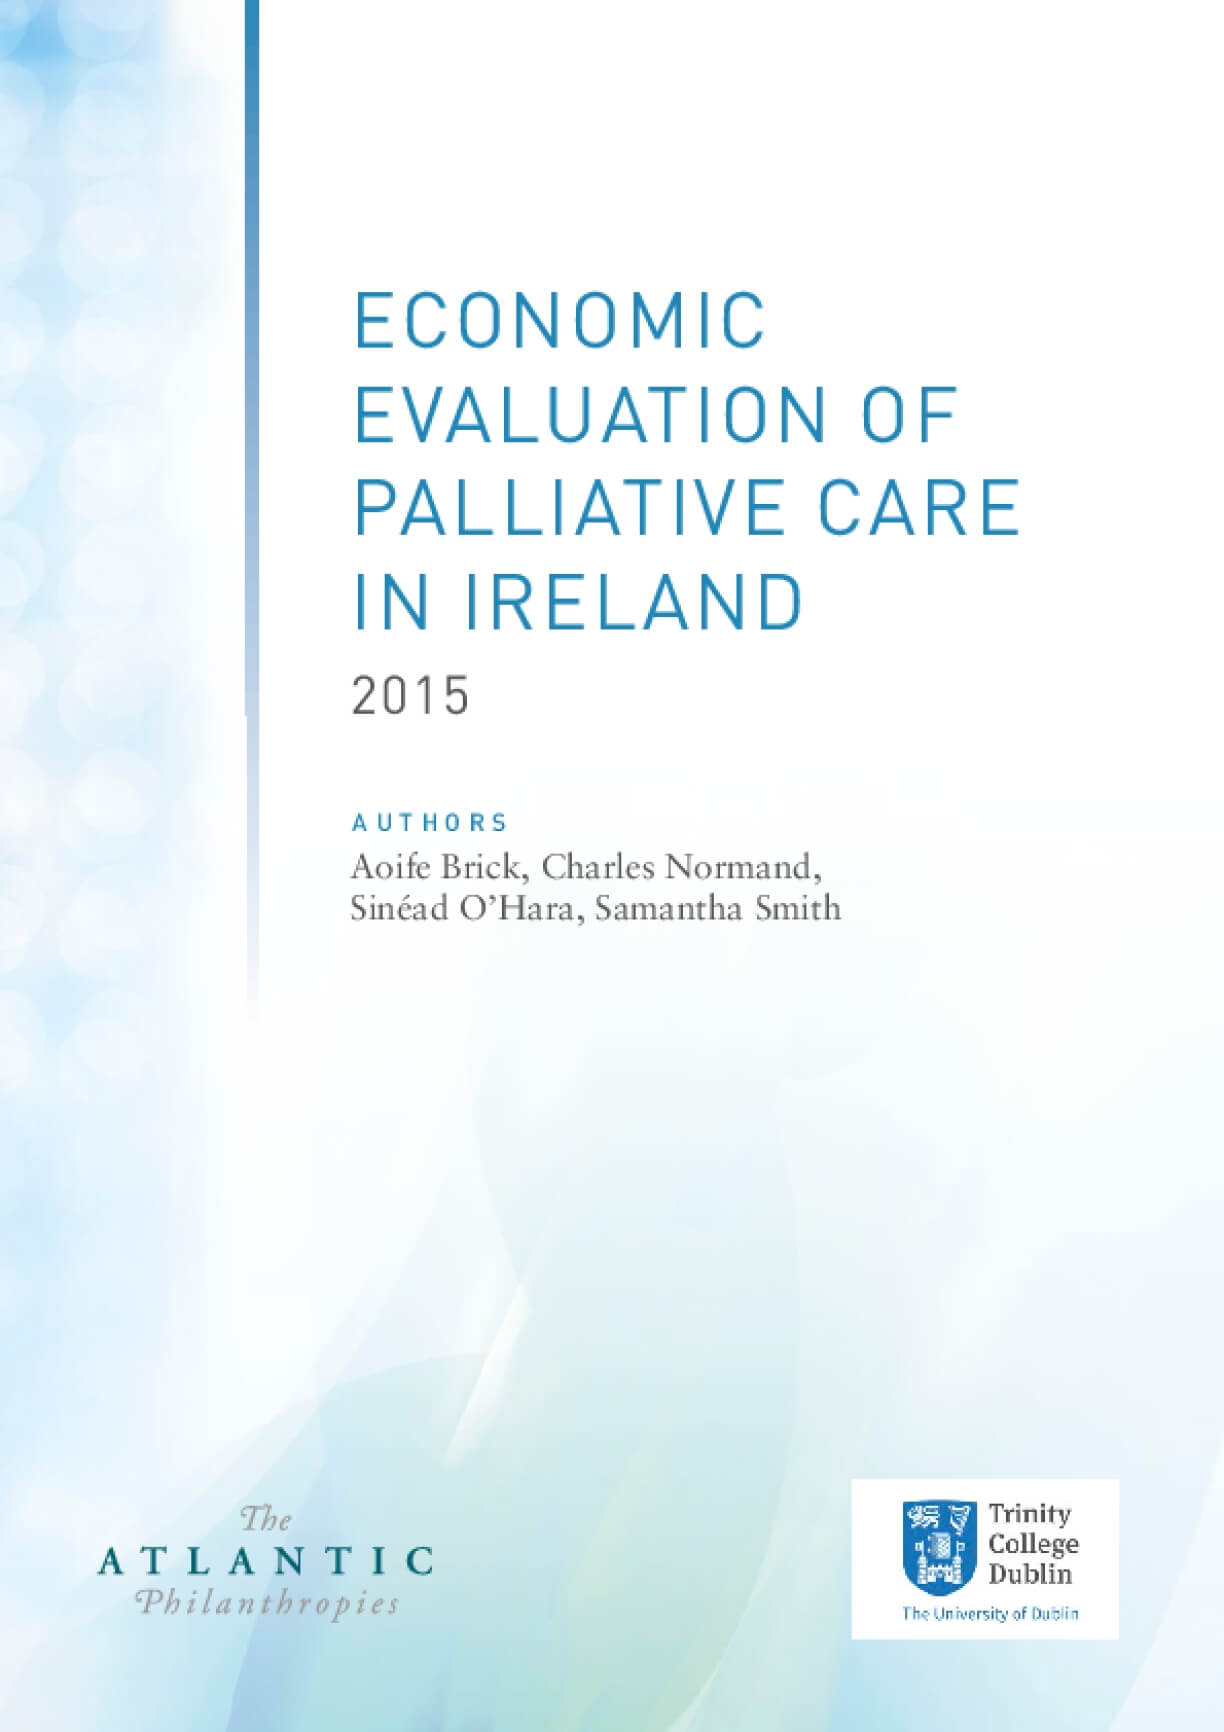 Economic Evaluation of Palliative Care in Ireland